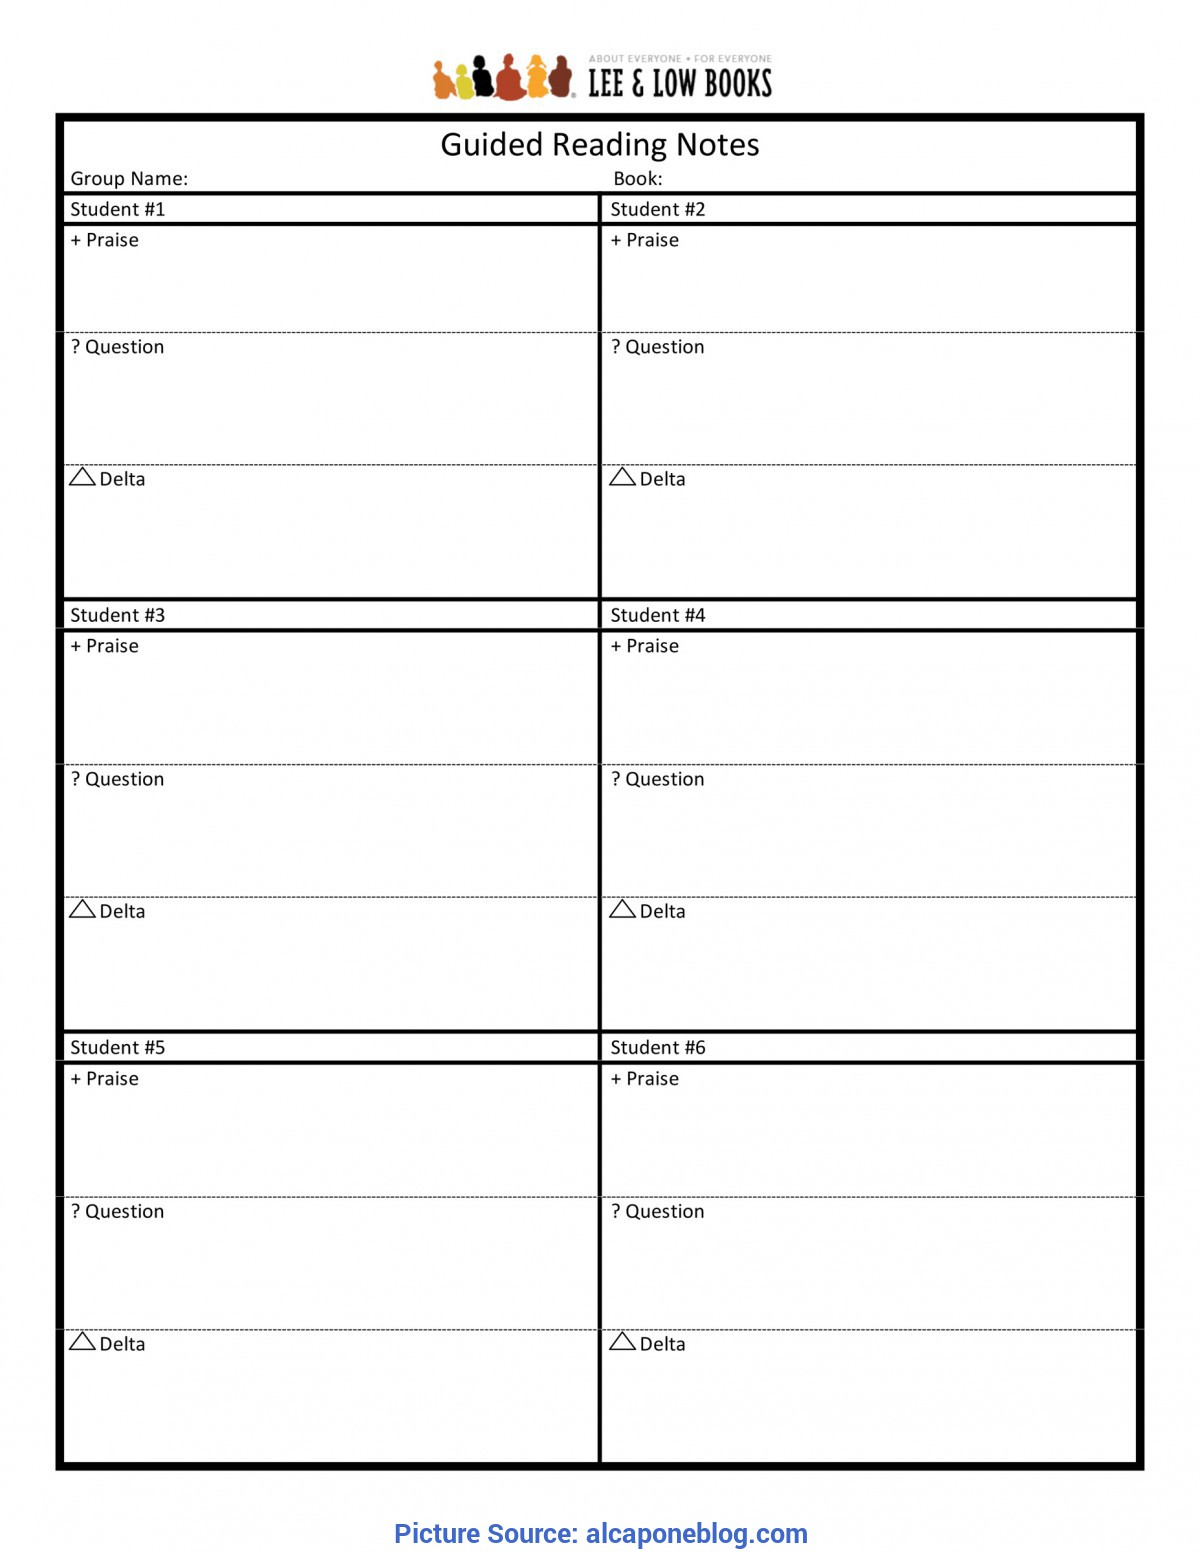 Valuable Guided Reading Notes Template Guided Reading Notes Template Common Core Curriculum Sampl